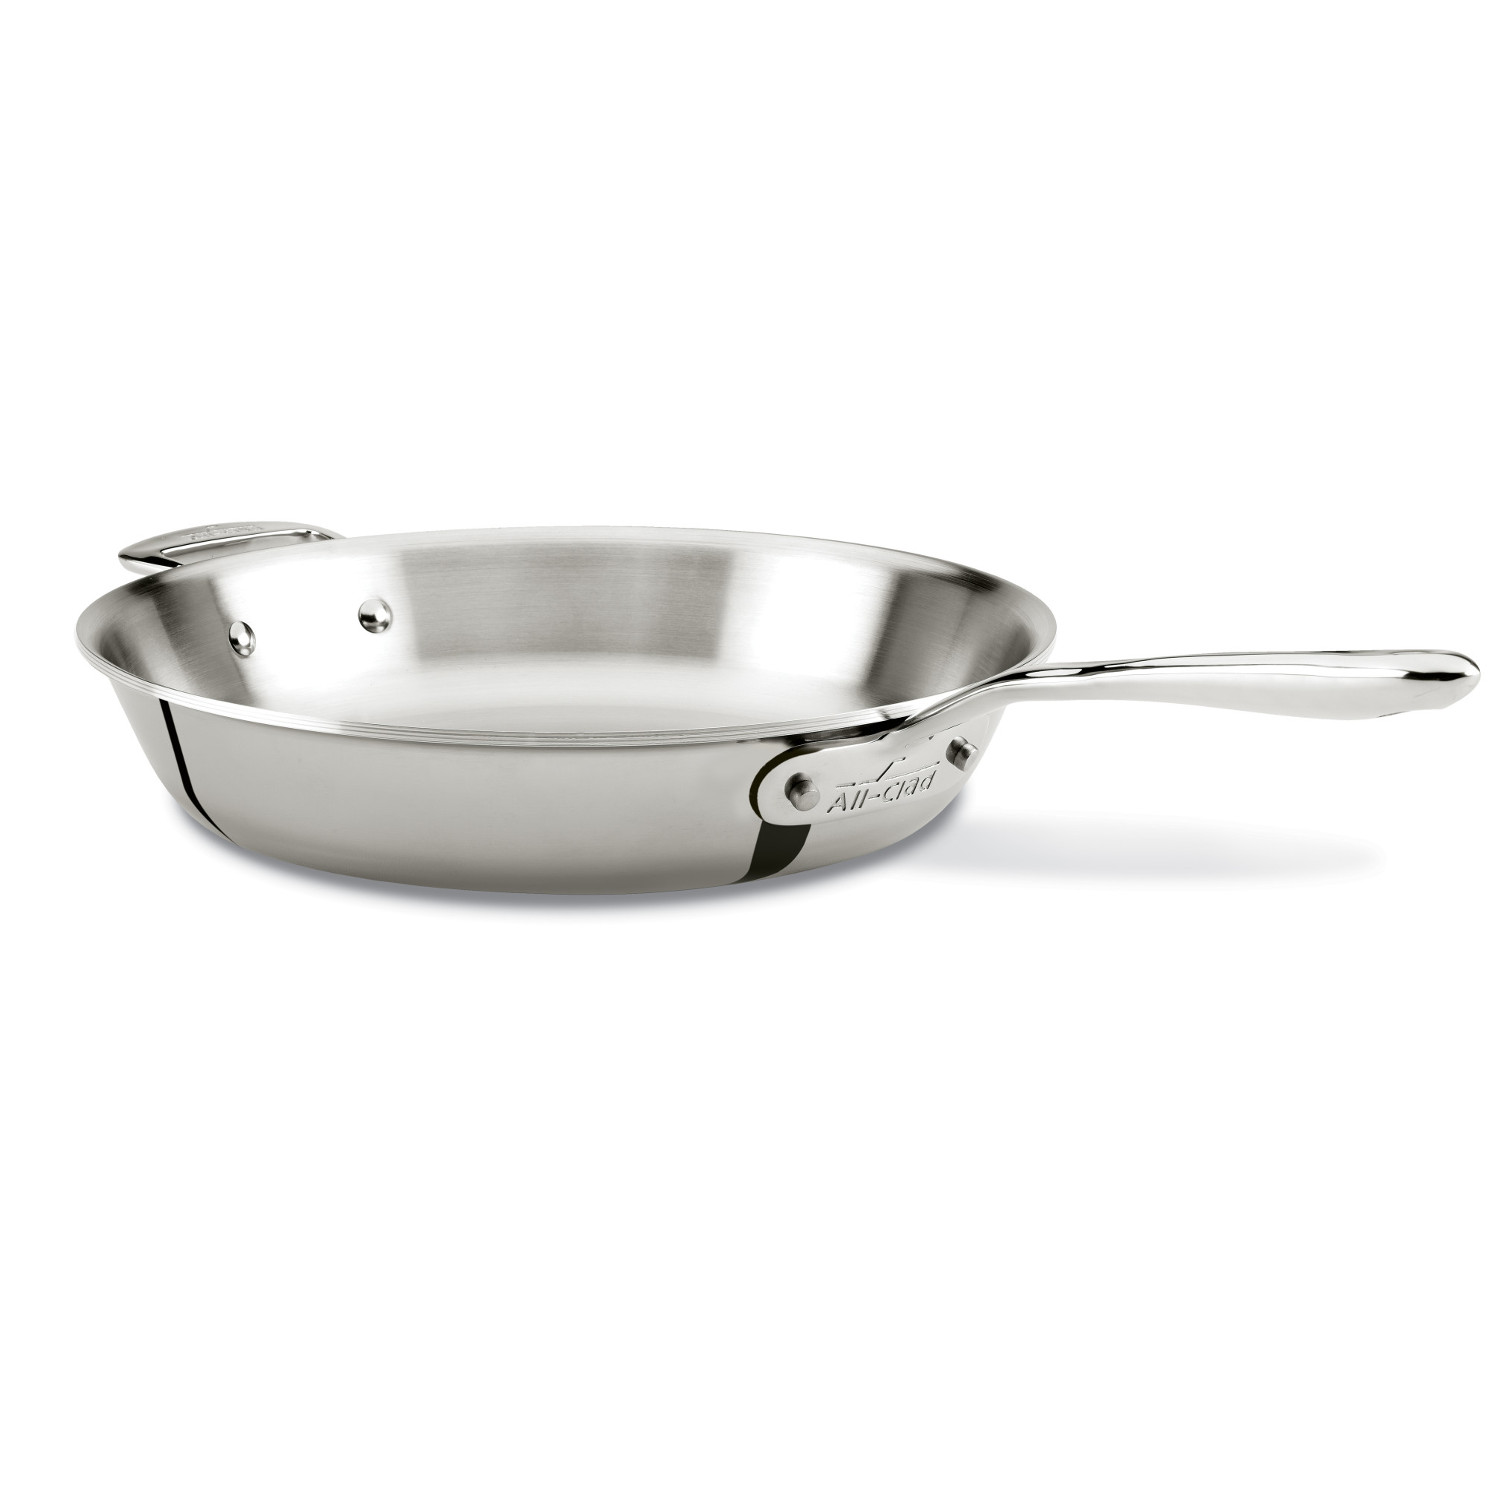 All Clad d7 Stainless Steel 12 Inch Fry Pan